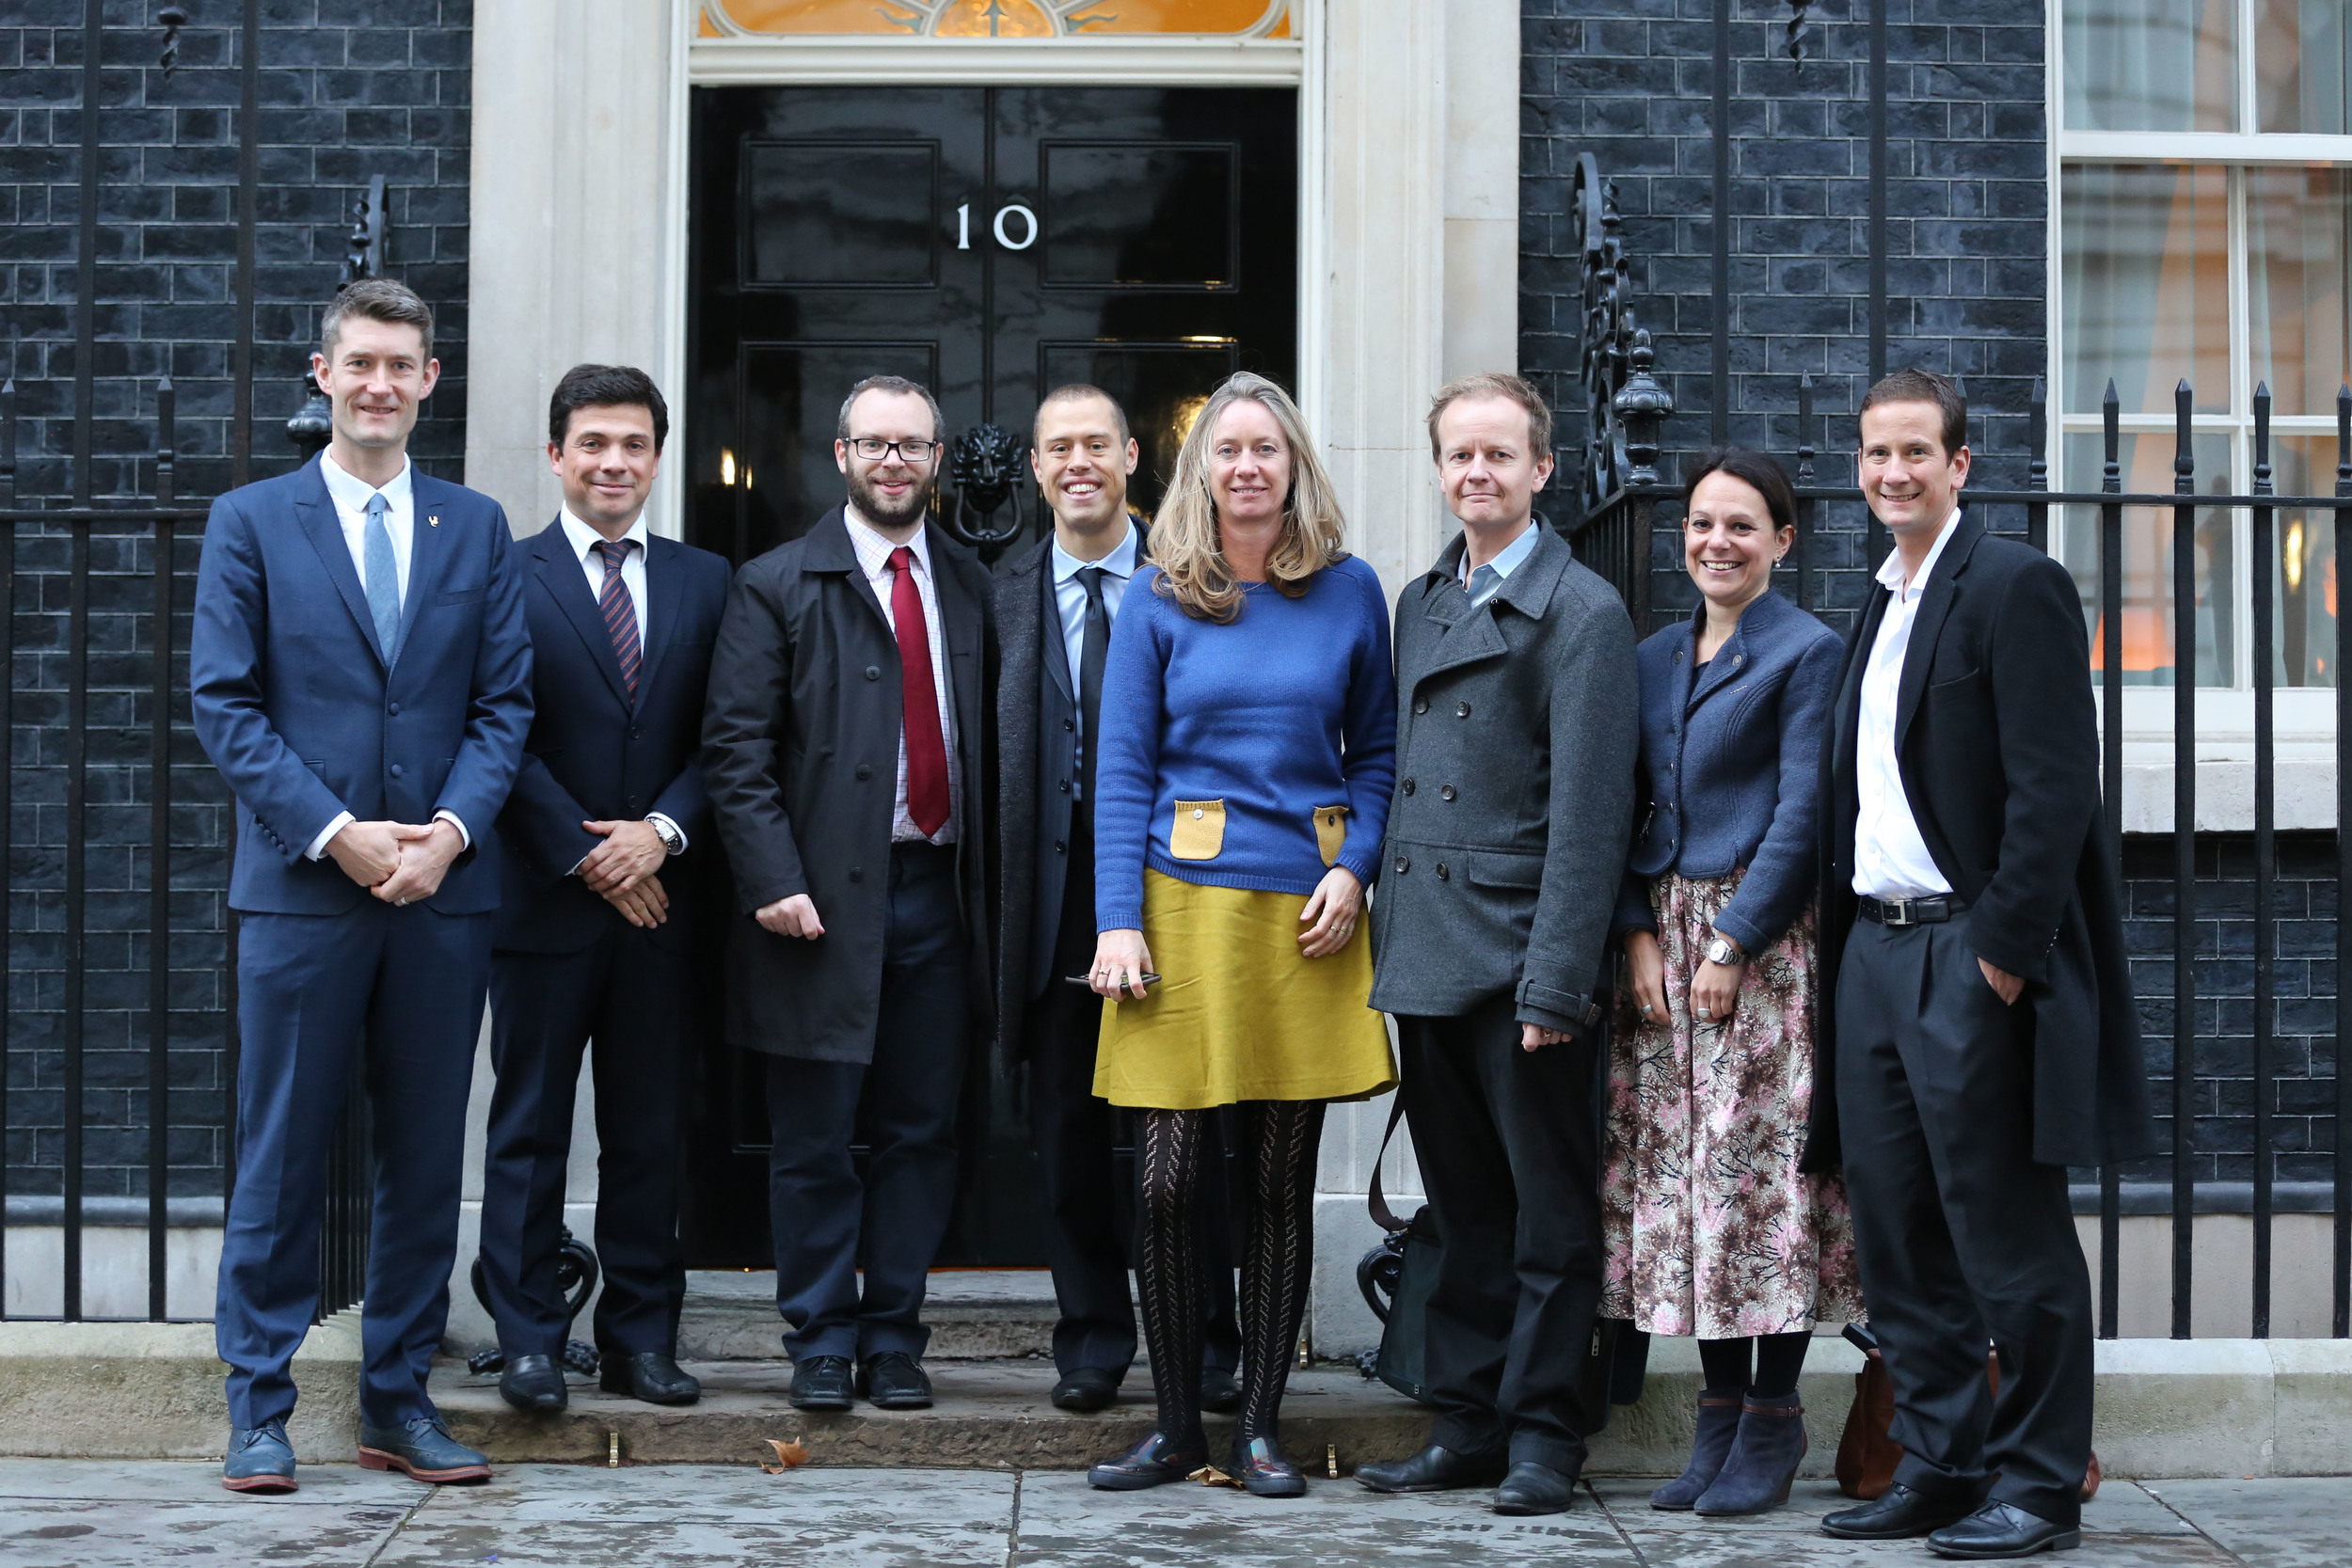 The Kentish Cluster group outside Number 10